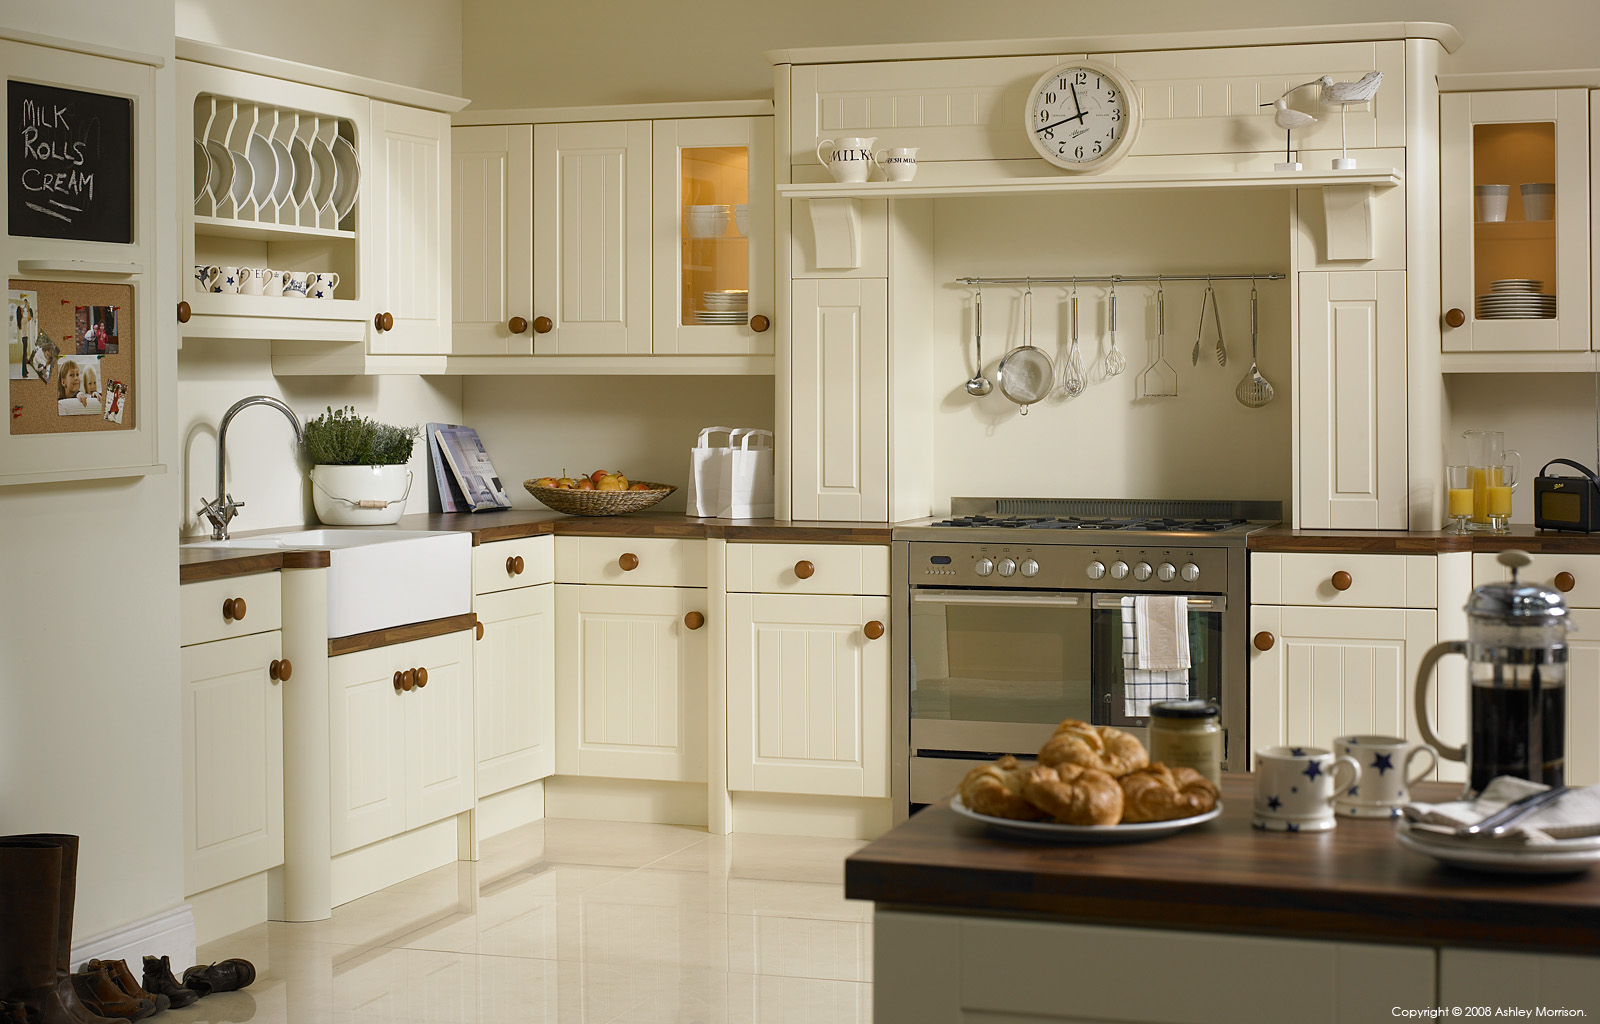 Vanilla Newport kitchen by BA Components.